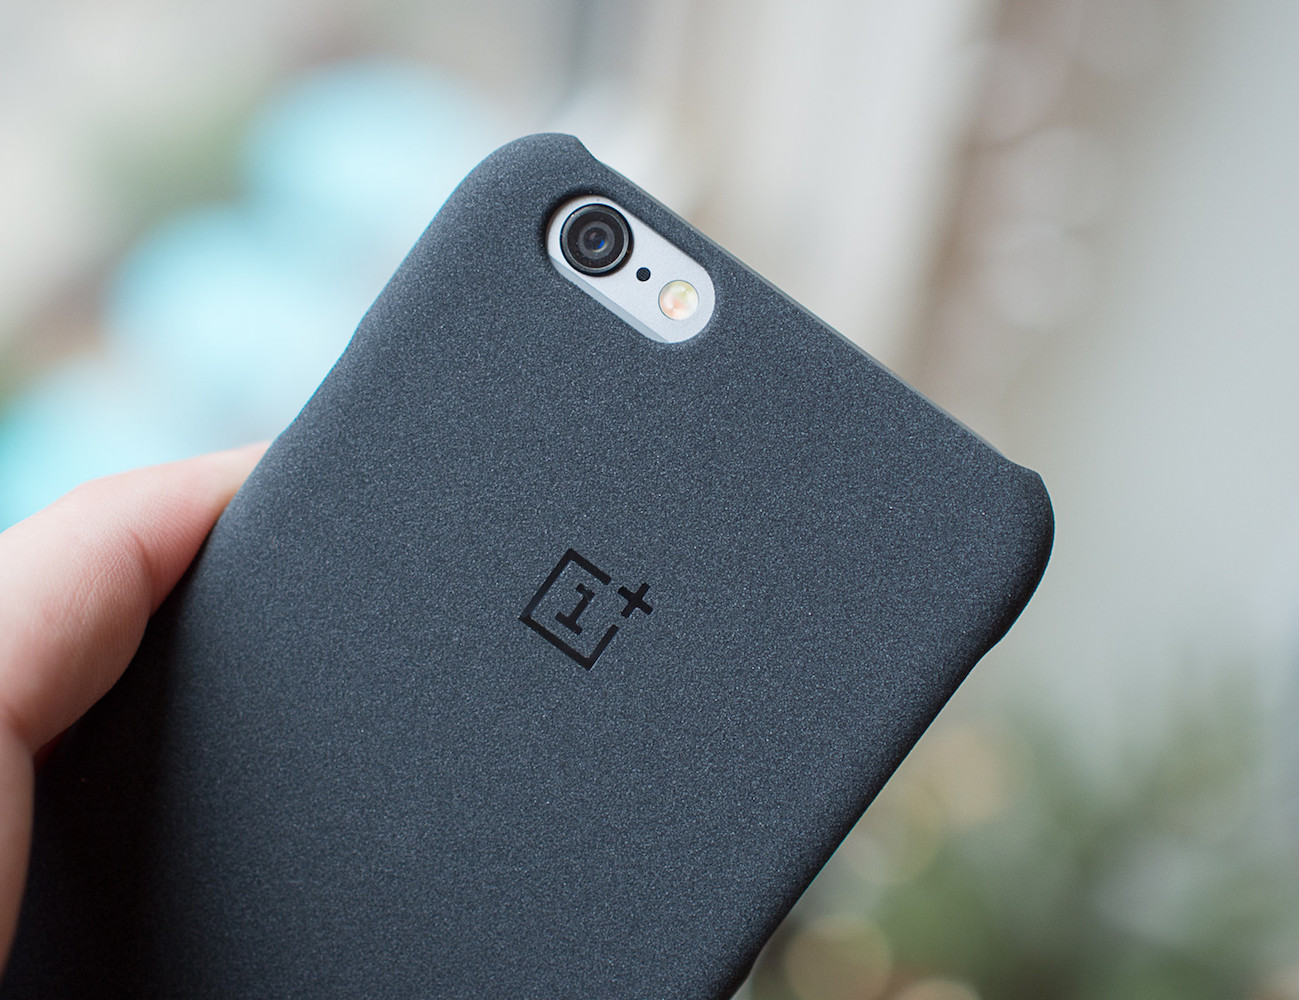 oneplus-sandstone-case-for-iphone-2